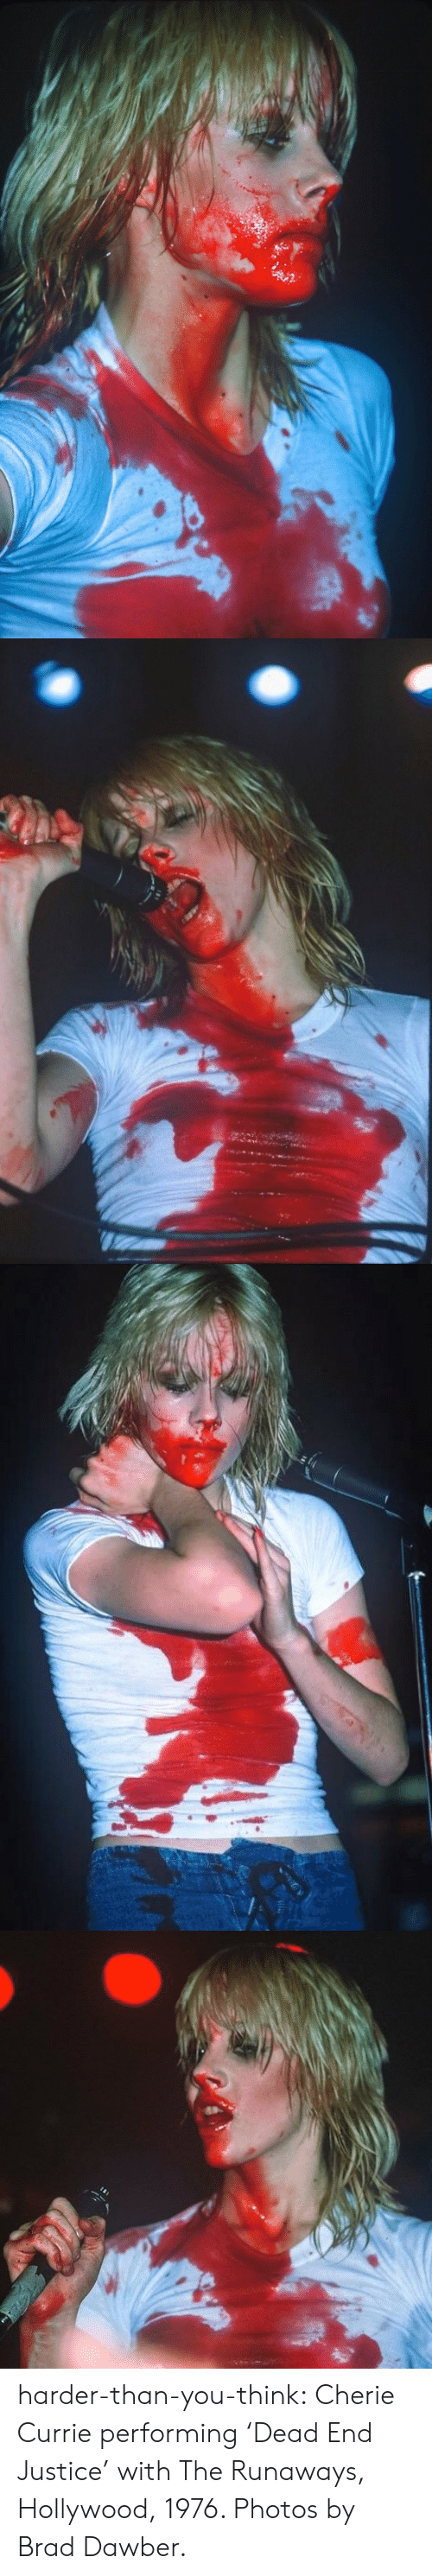 dead end: harder-than-you-think:  Cherie Currie performing 'Dead End Justice' with The Runaways, Hollywood, 1976. Photos by Brad Dawber.